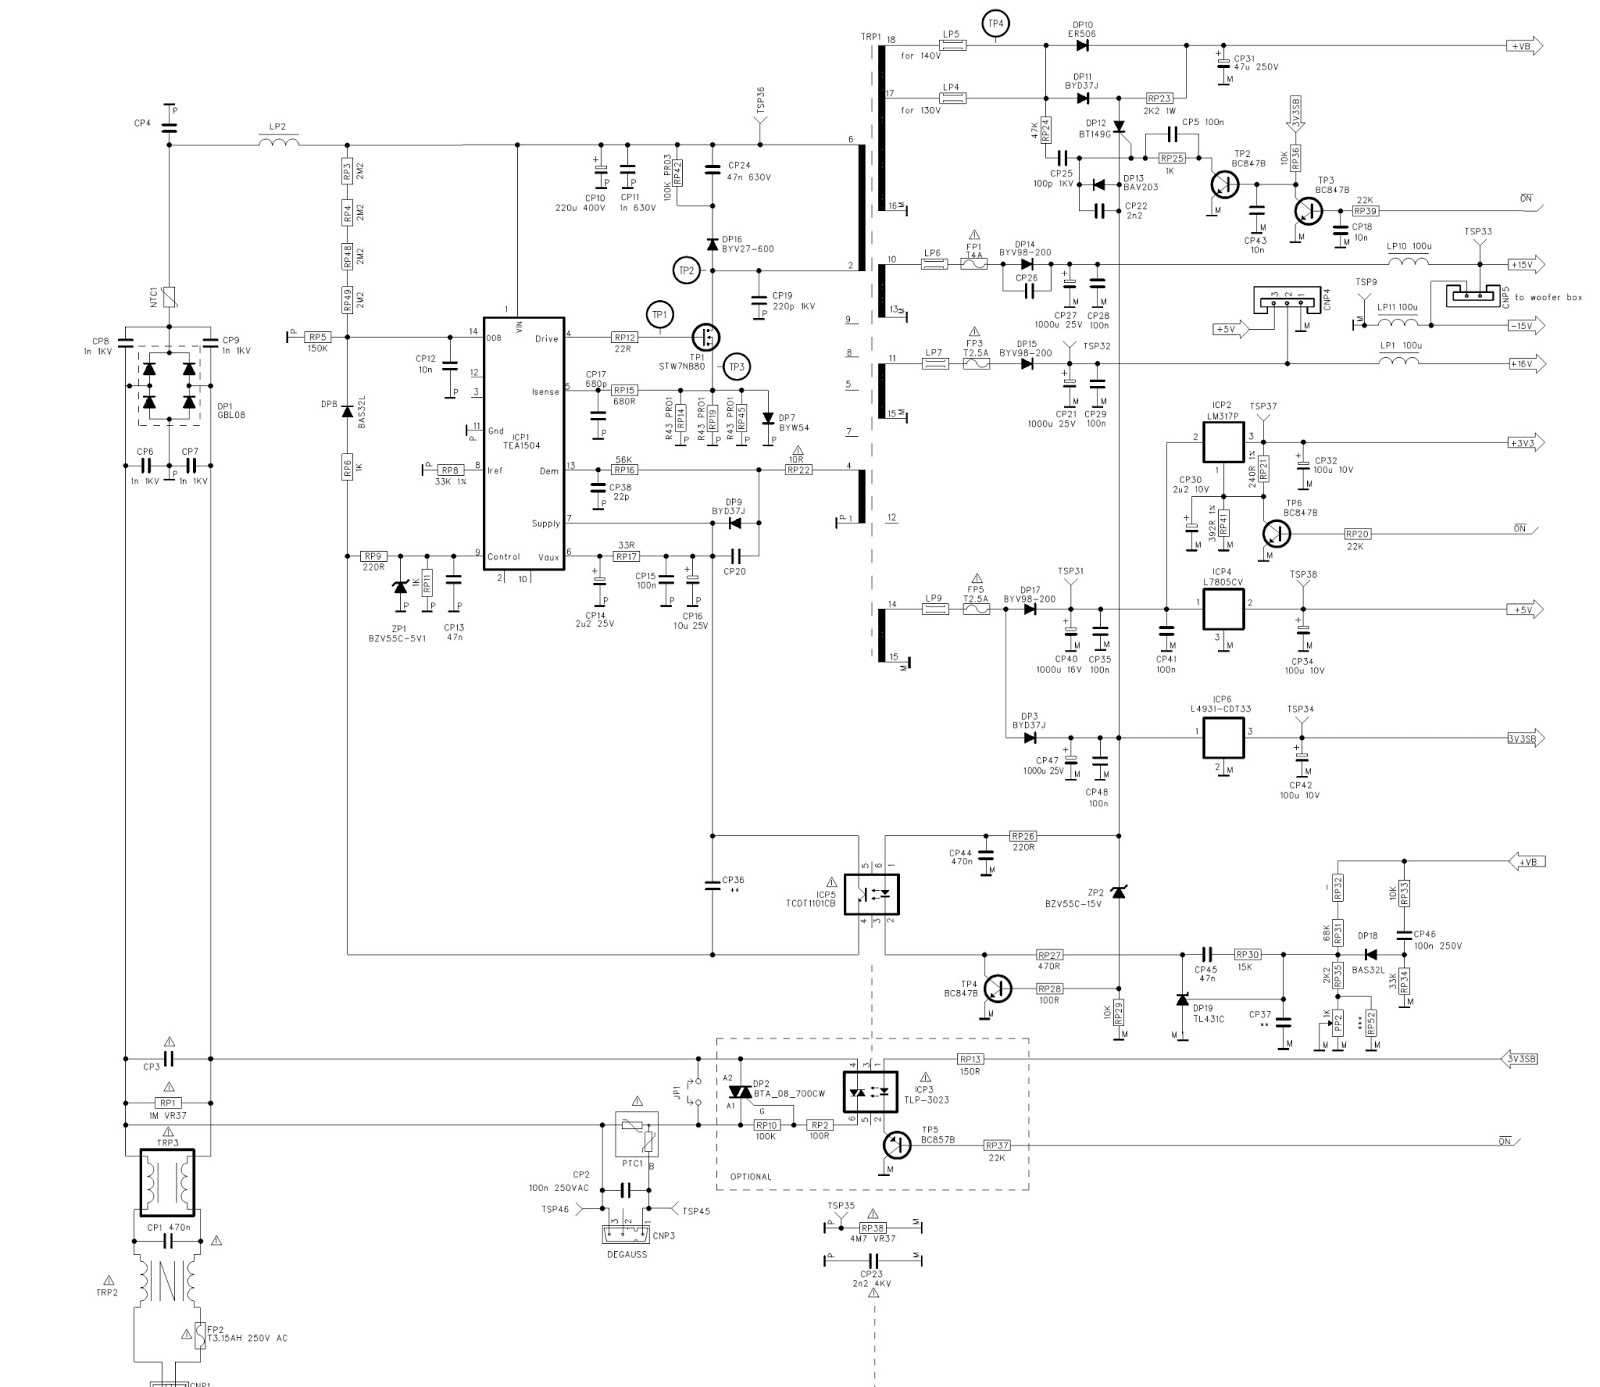 Smps power supply schematic diagram